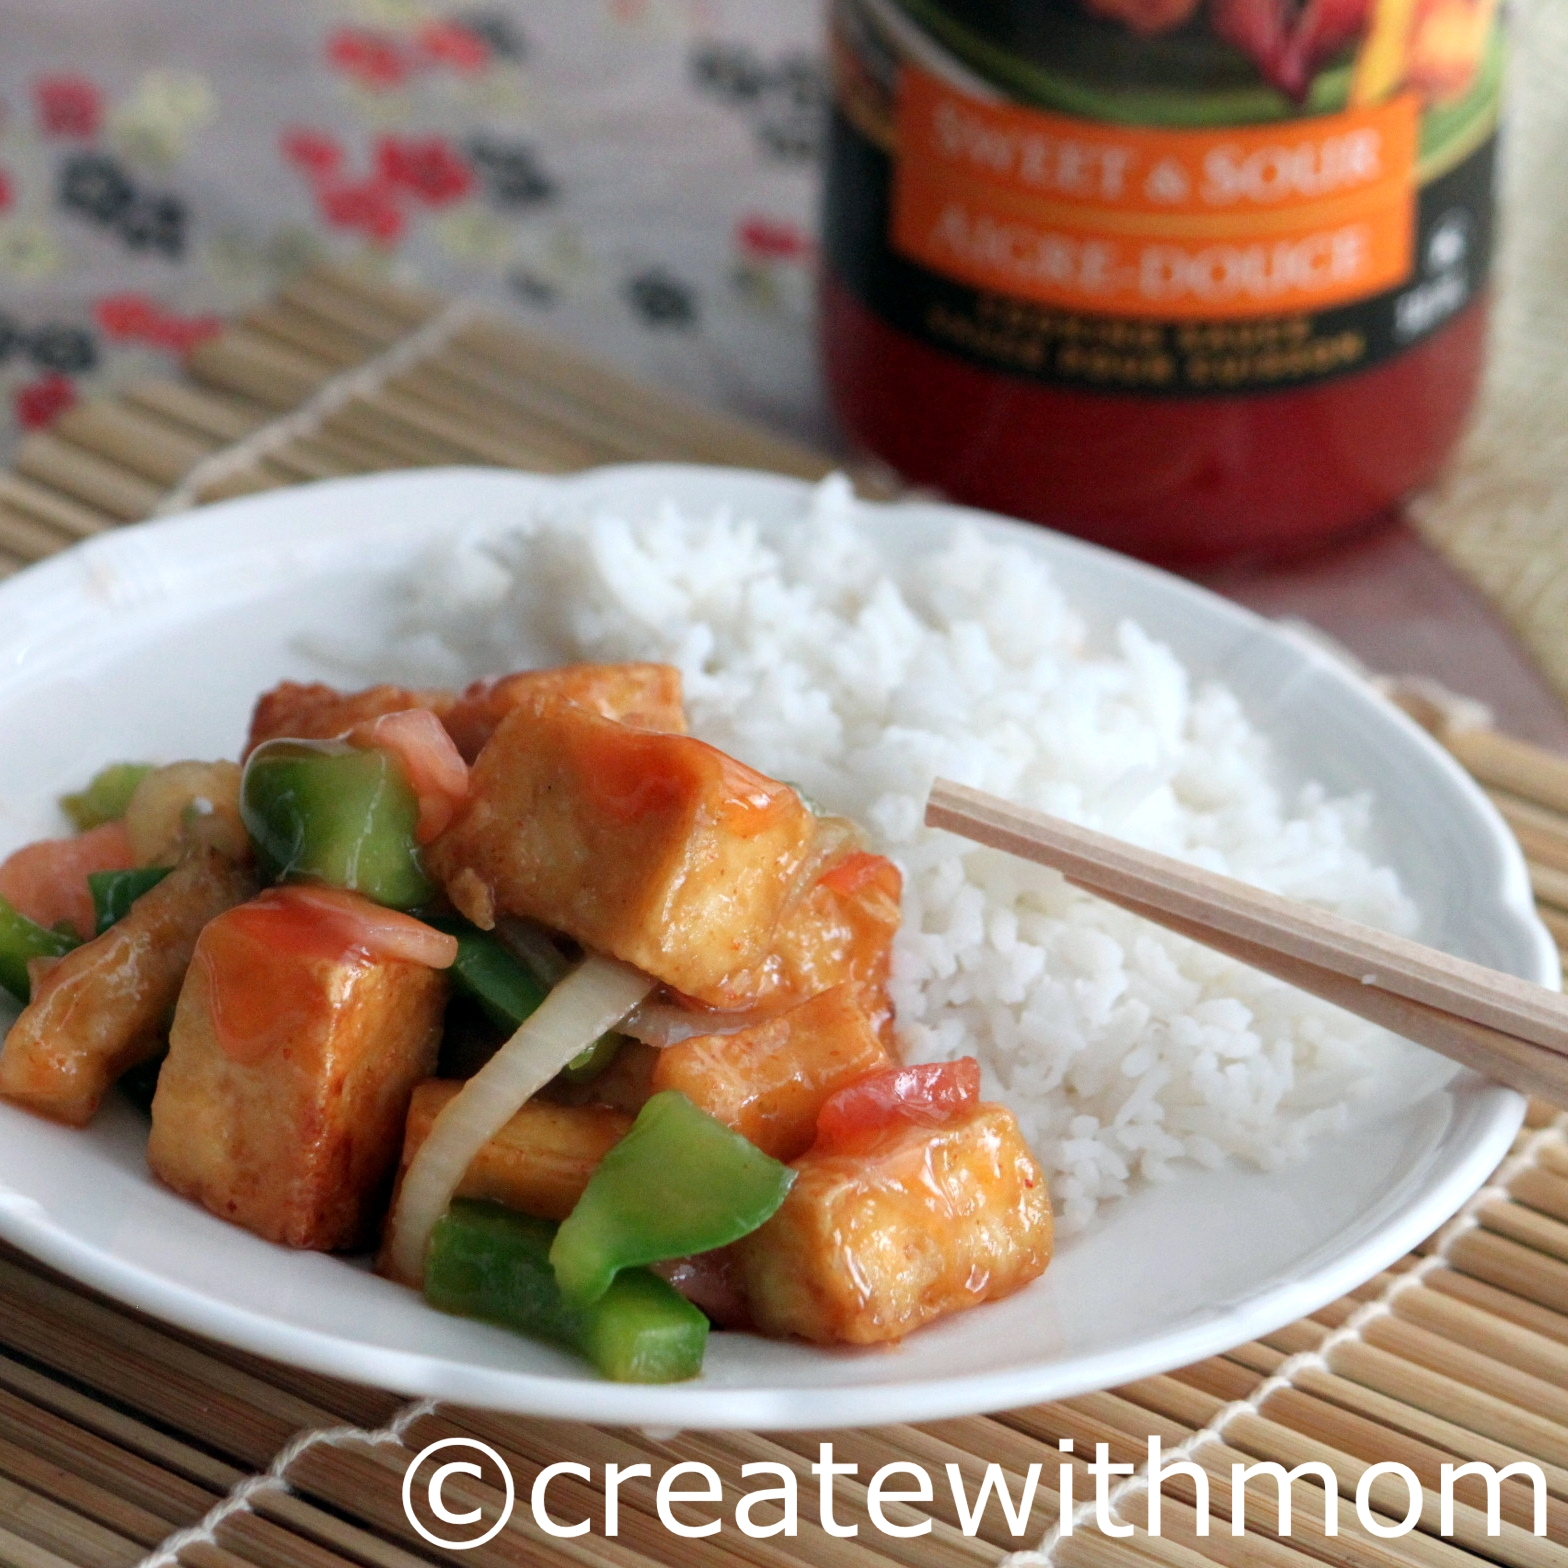 Tofu stir fried with VH sweet and sour sauce.